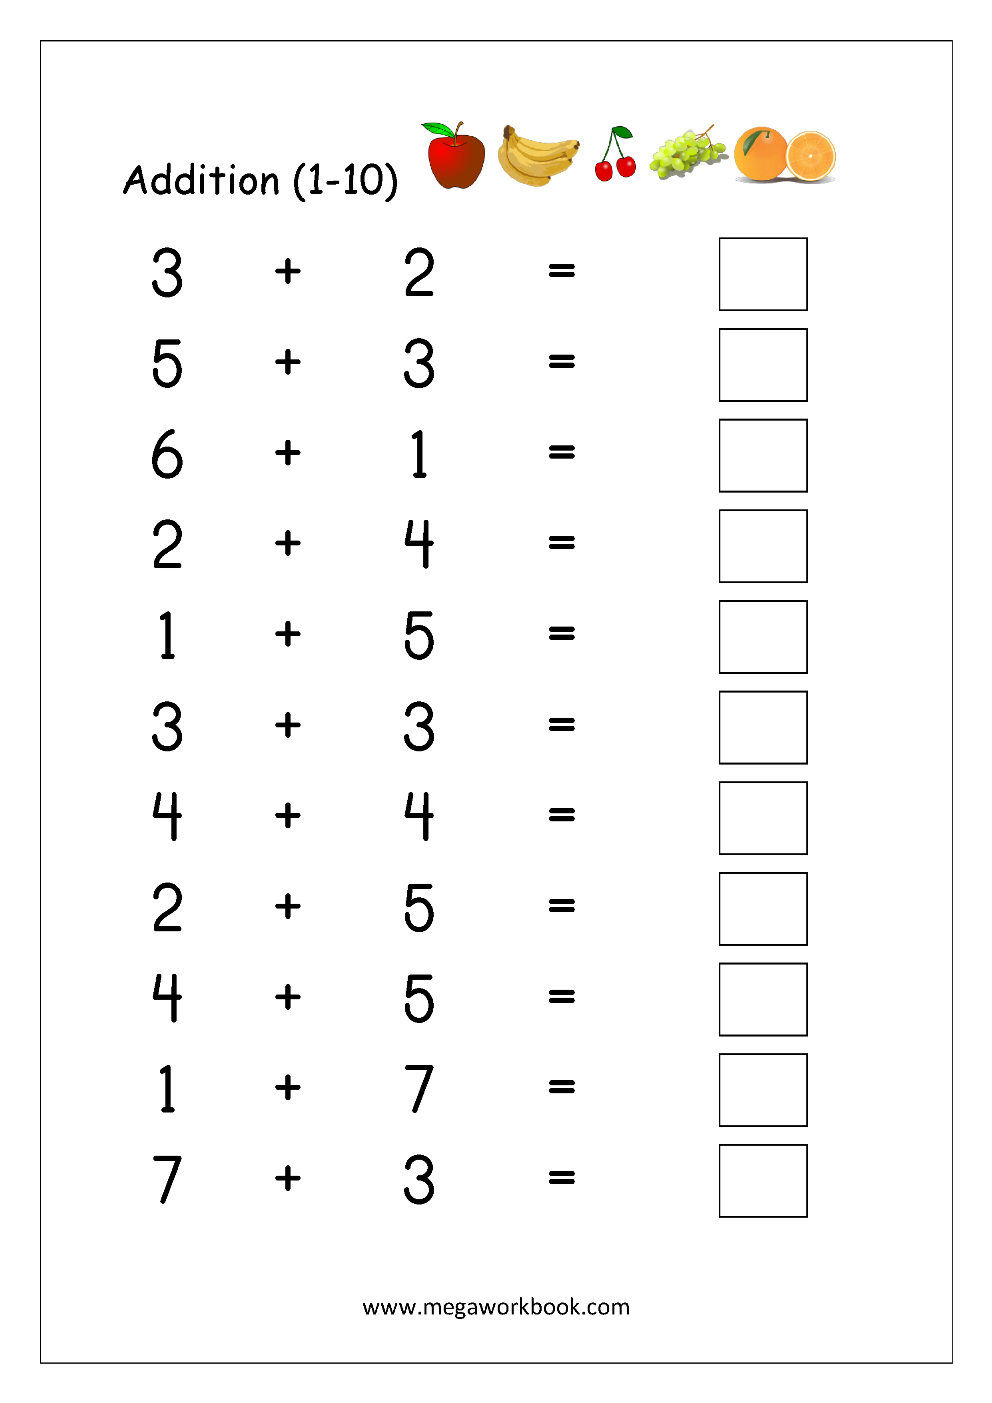 math worksheet addition 1 10 maths worksheets for kindergarten addition worksheets. Black Bedroom Furniture Sets. Home Design Ideas